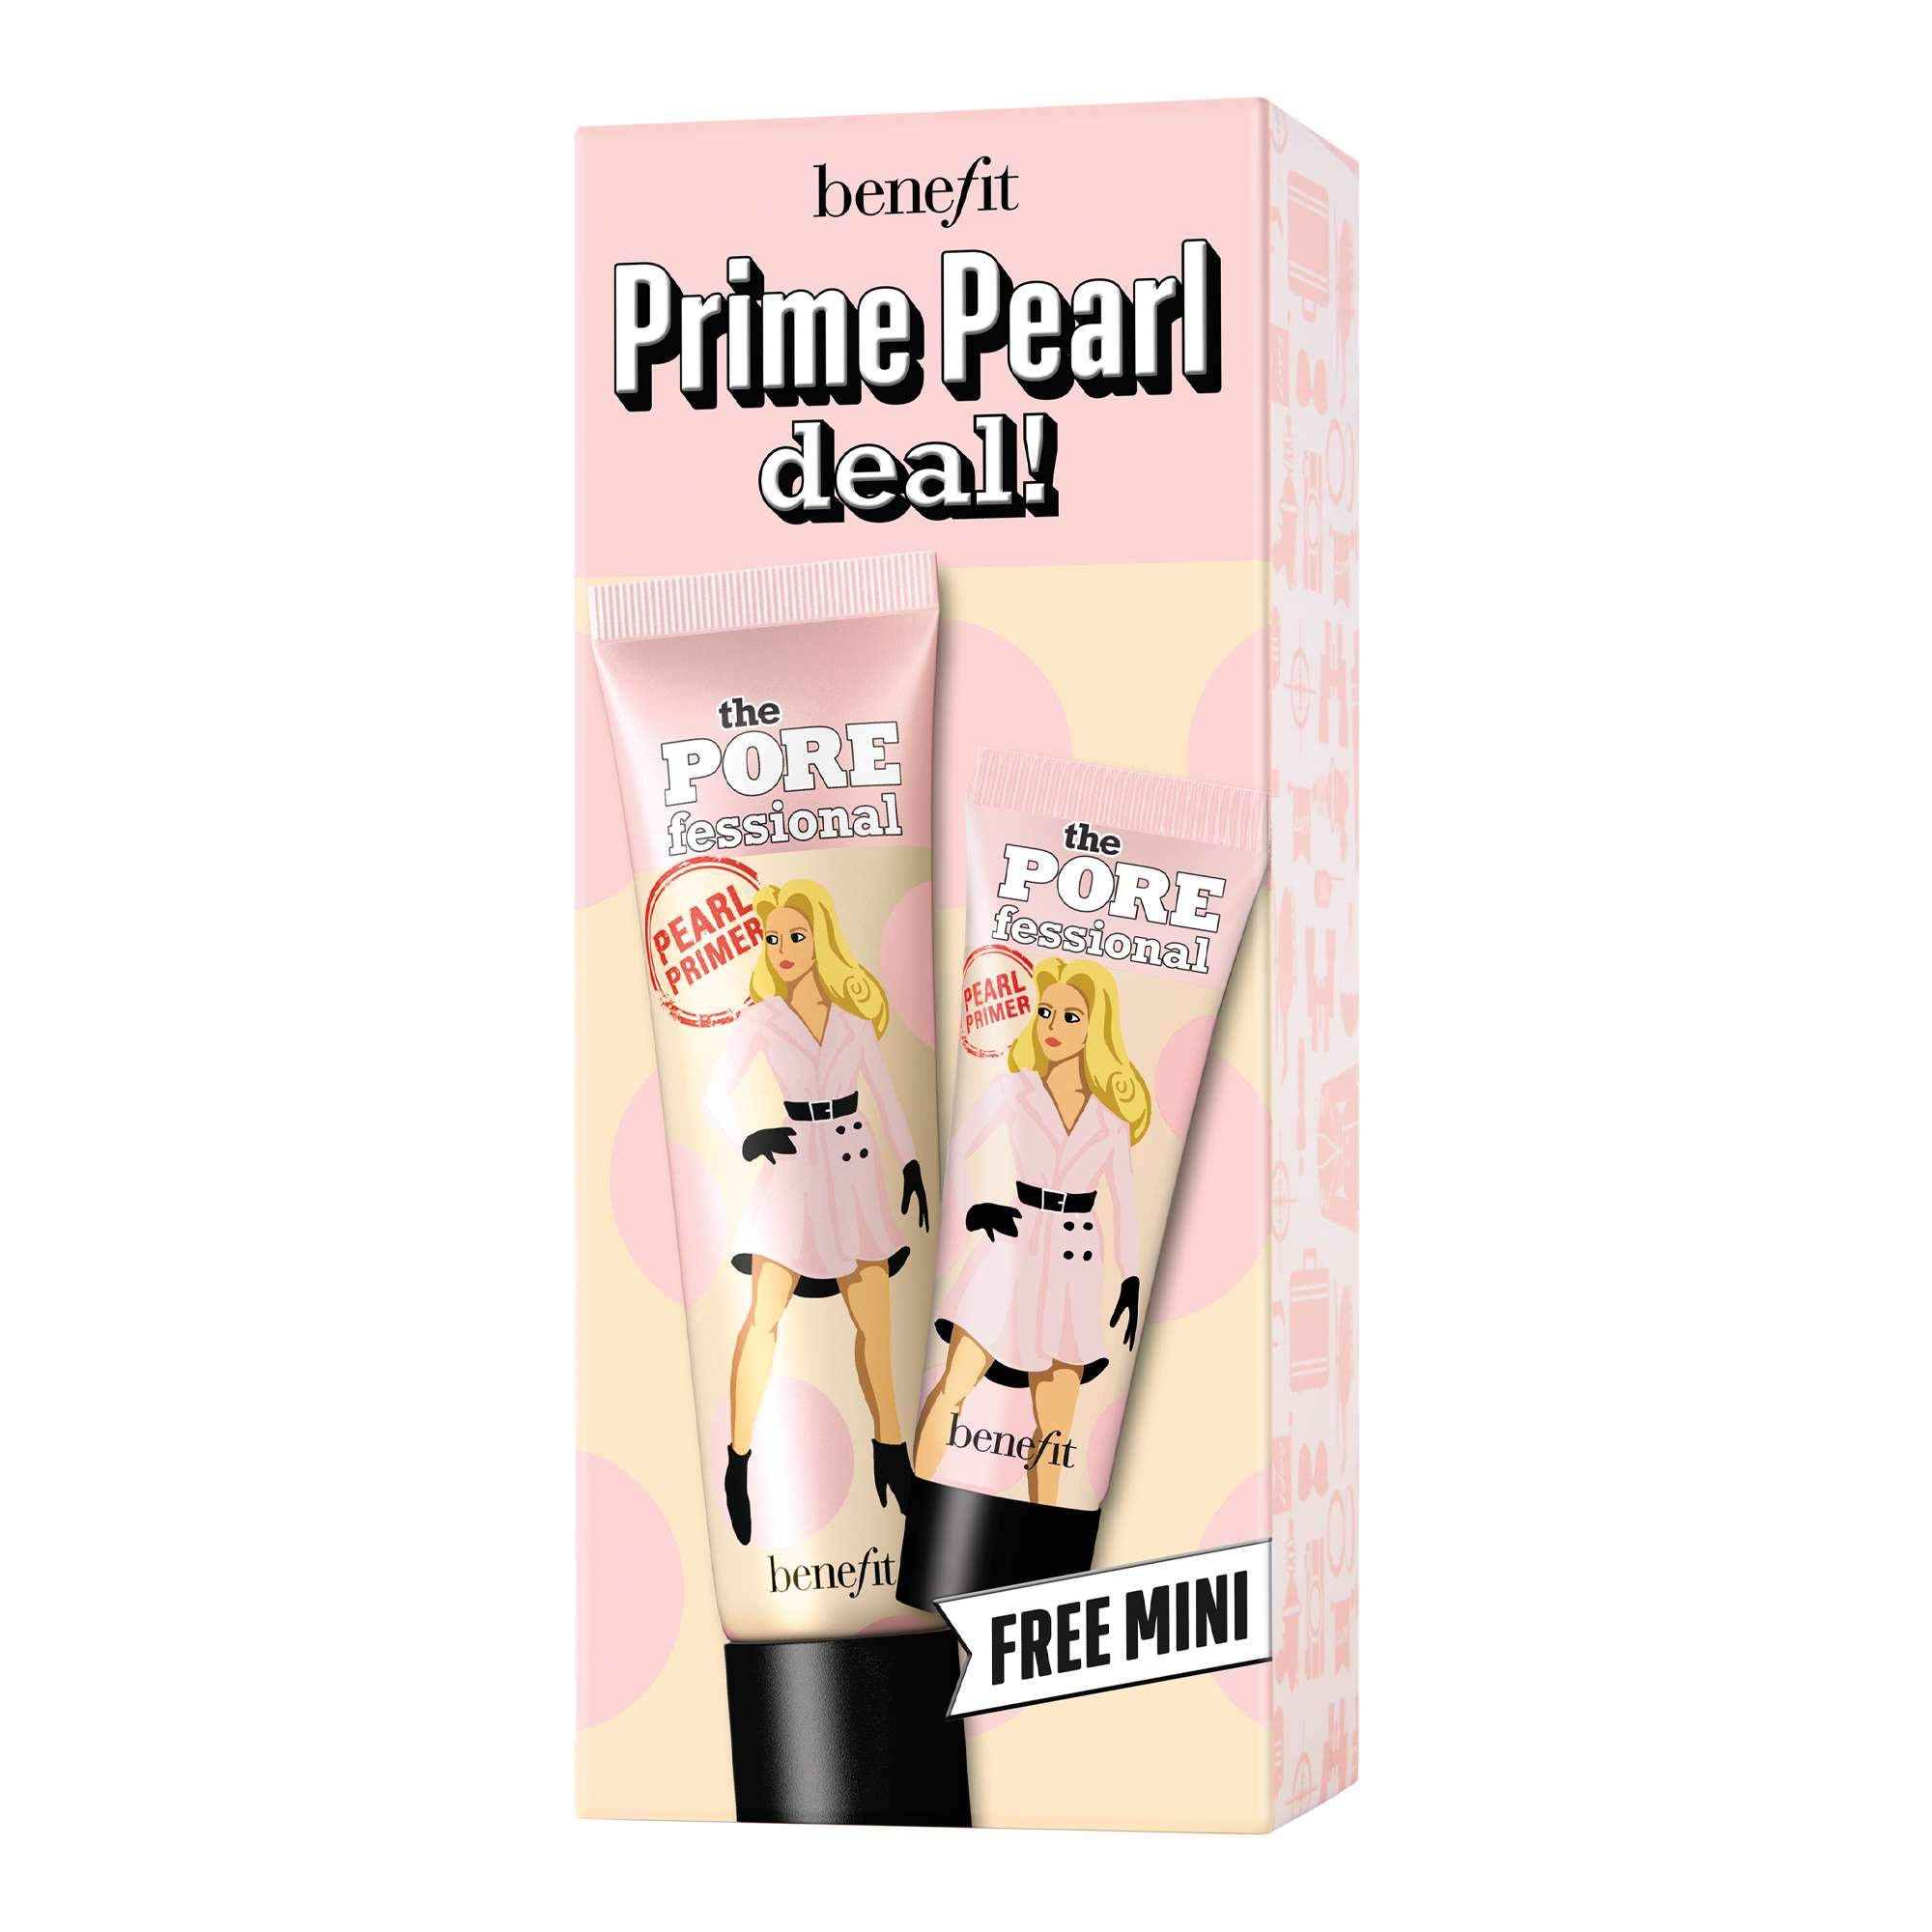 BENEFIT PRIME PEARL DEAL